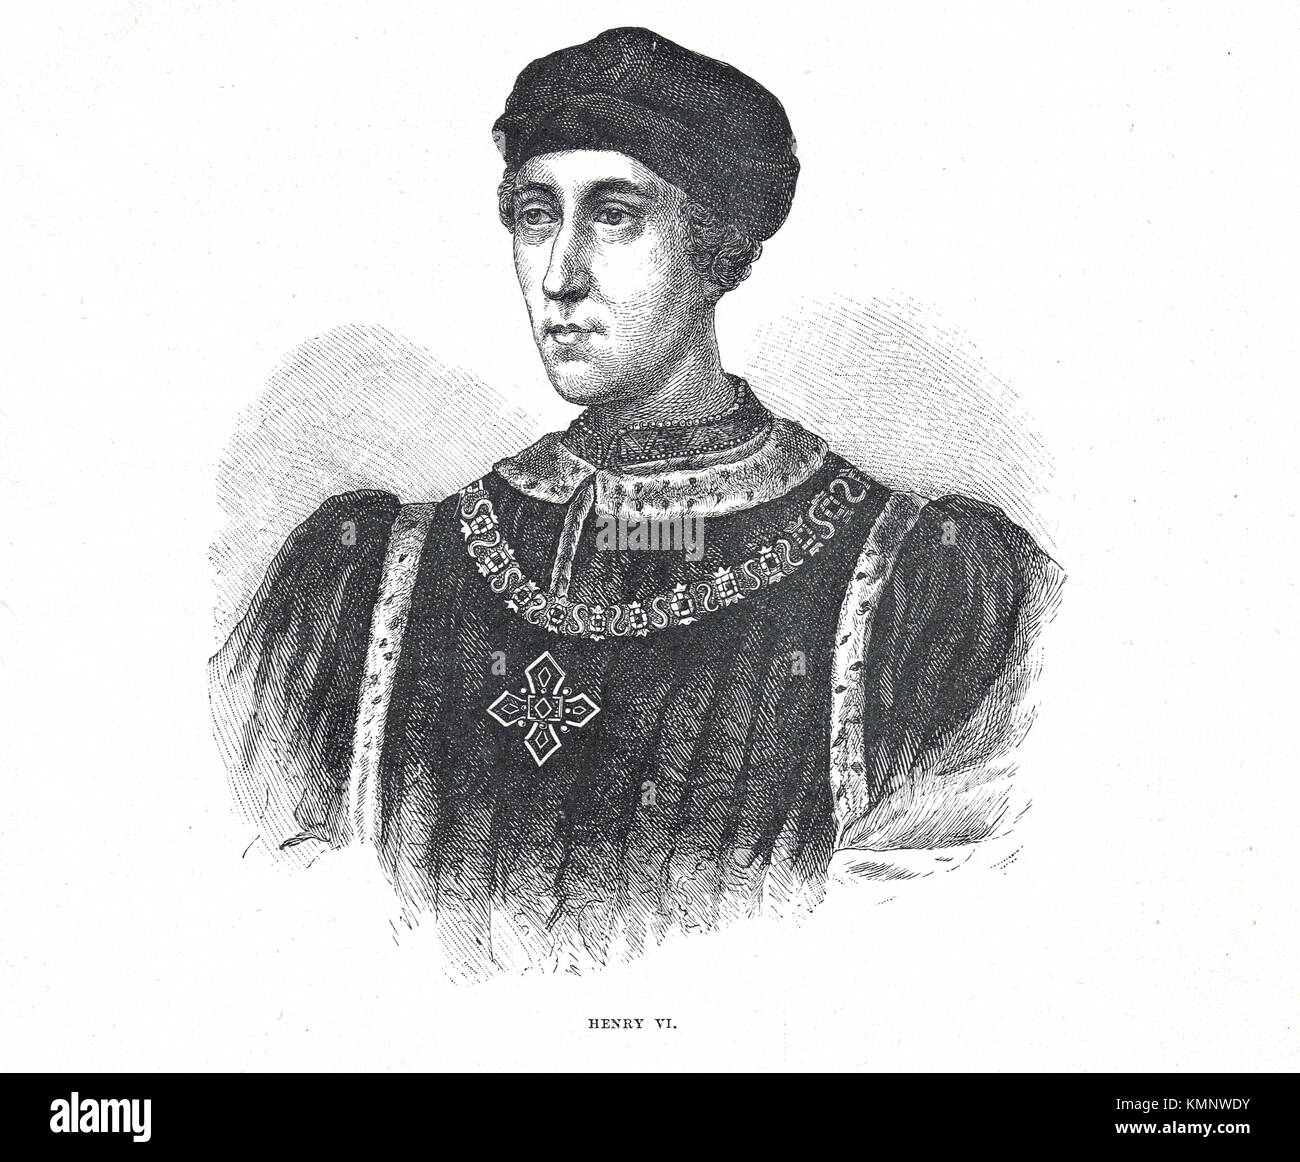 King Henry VI of England, 1421-1471, 1st Reign 1422-1453, 2nd Reign 1470-1471 - Stock Image